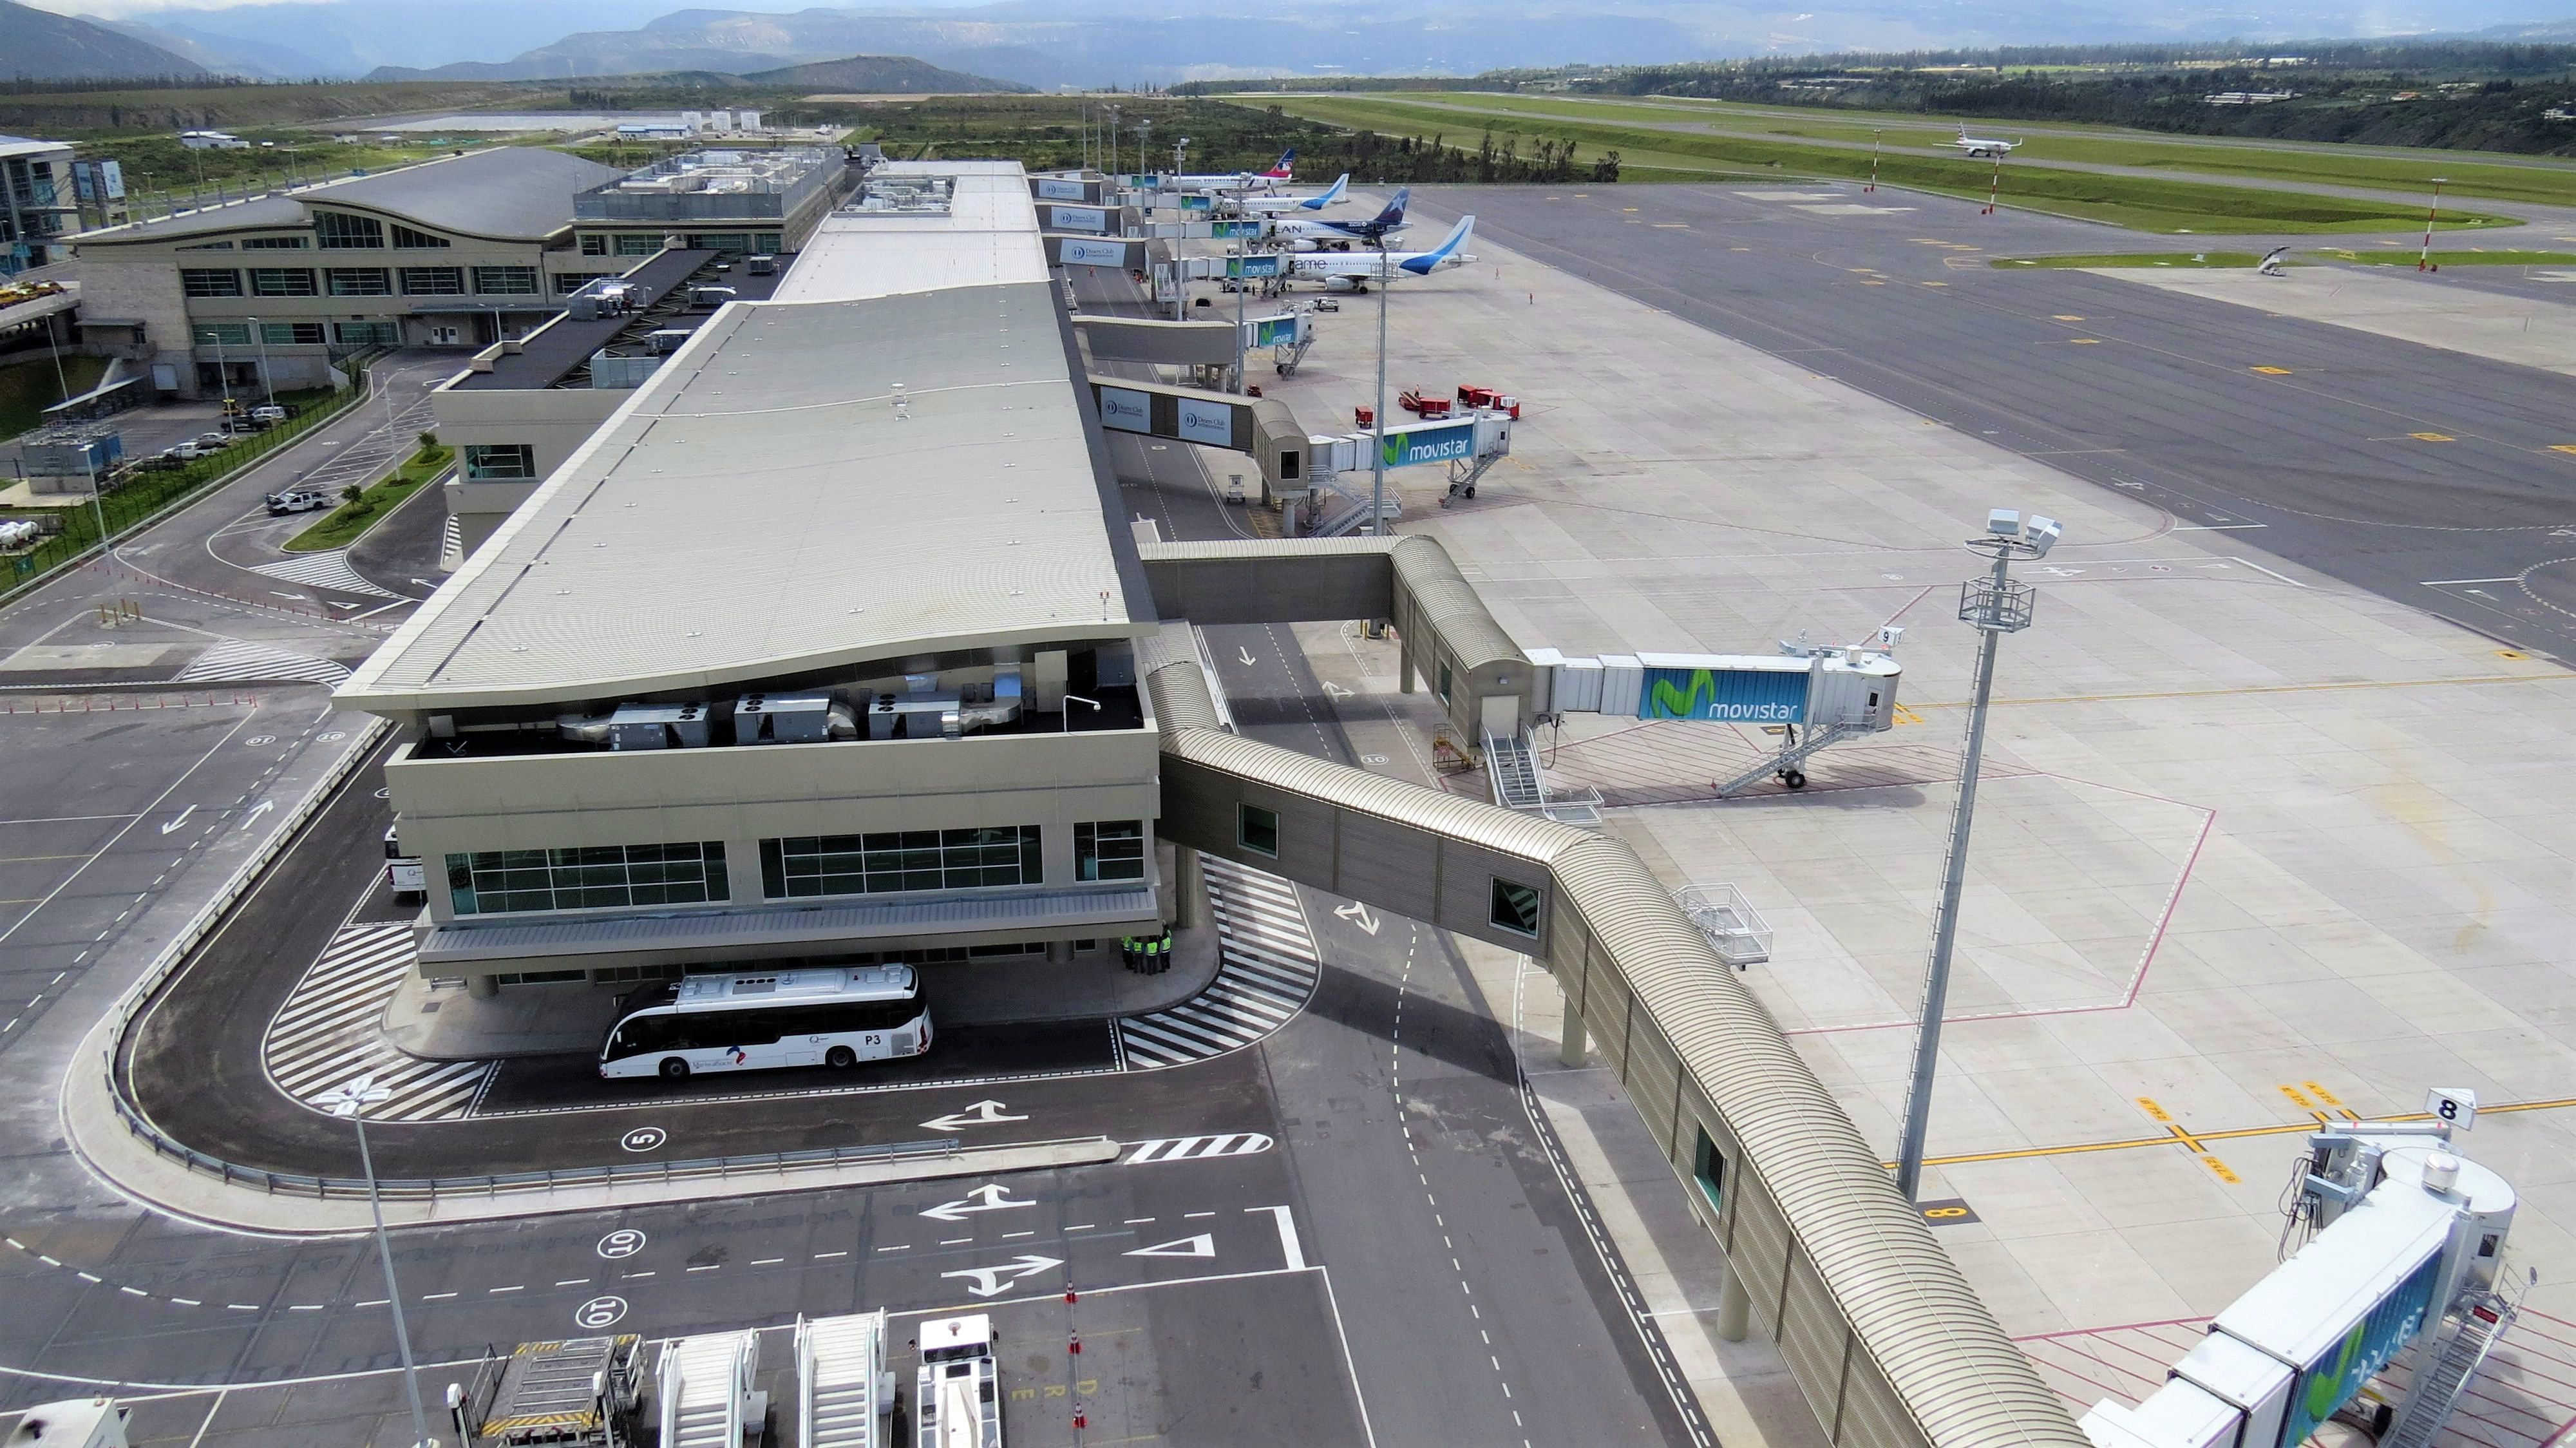 There are already 30 million passengers in the New Quito Airport